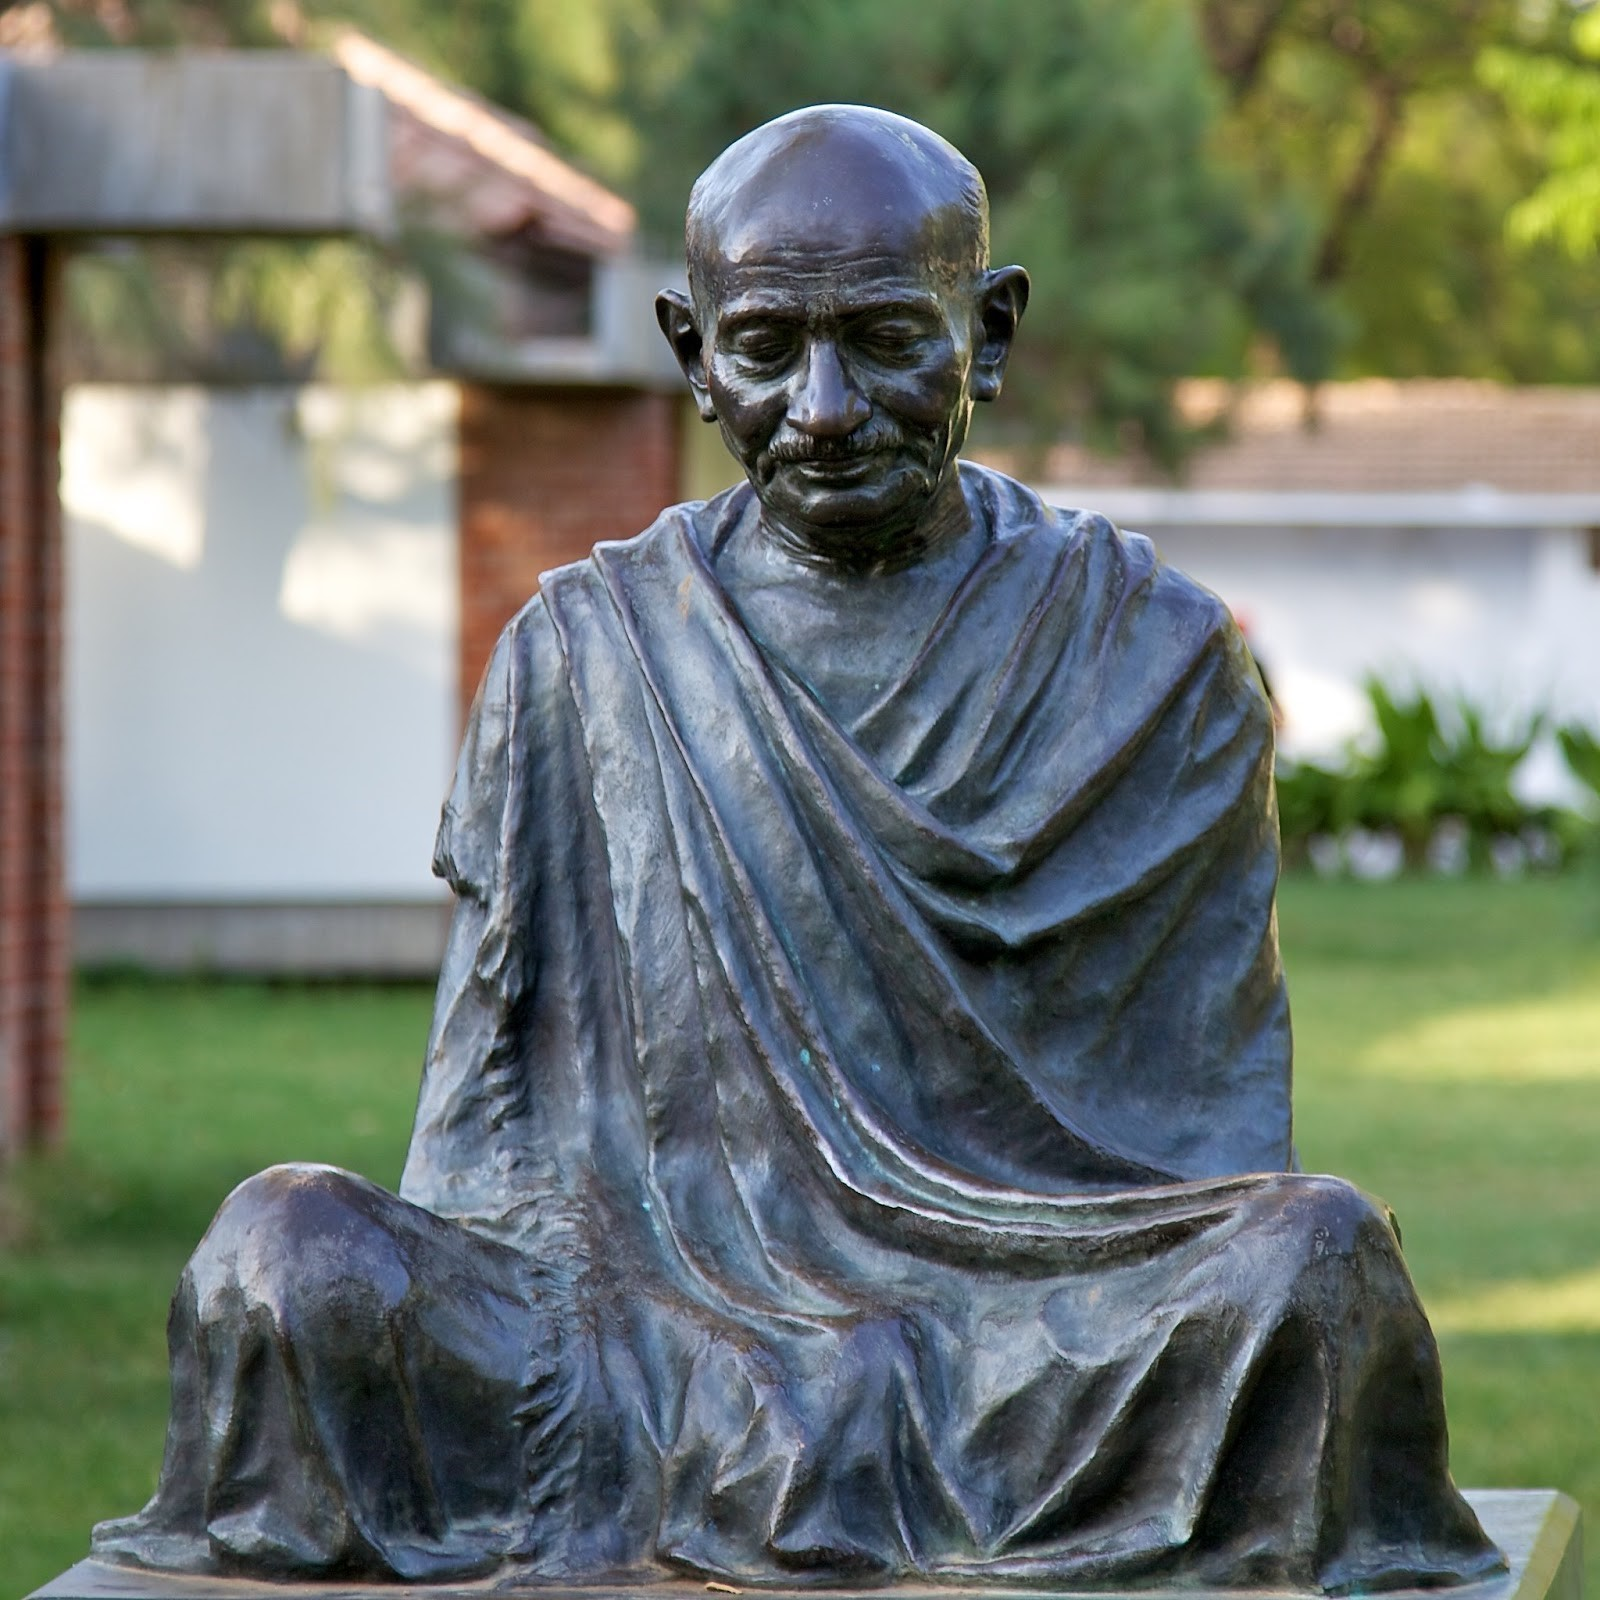 There are statues to Gandhi across the world: this one is at the Sabarmati Ashram.